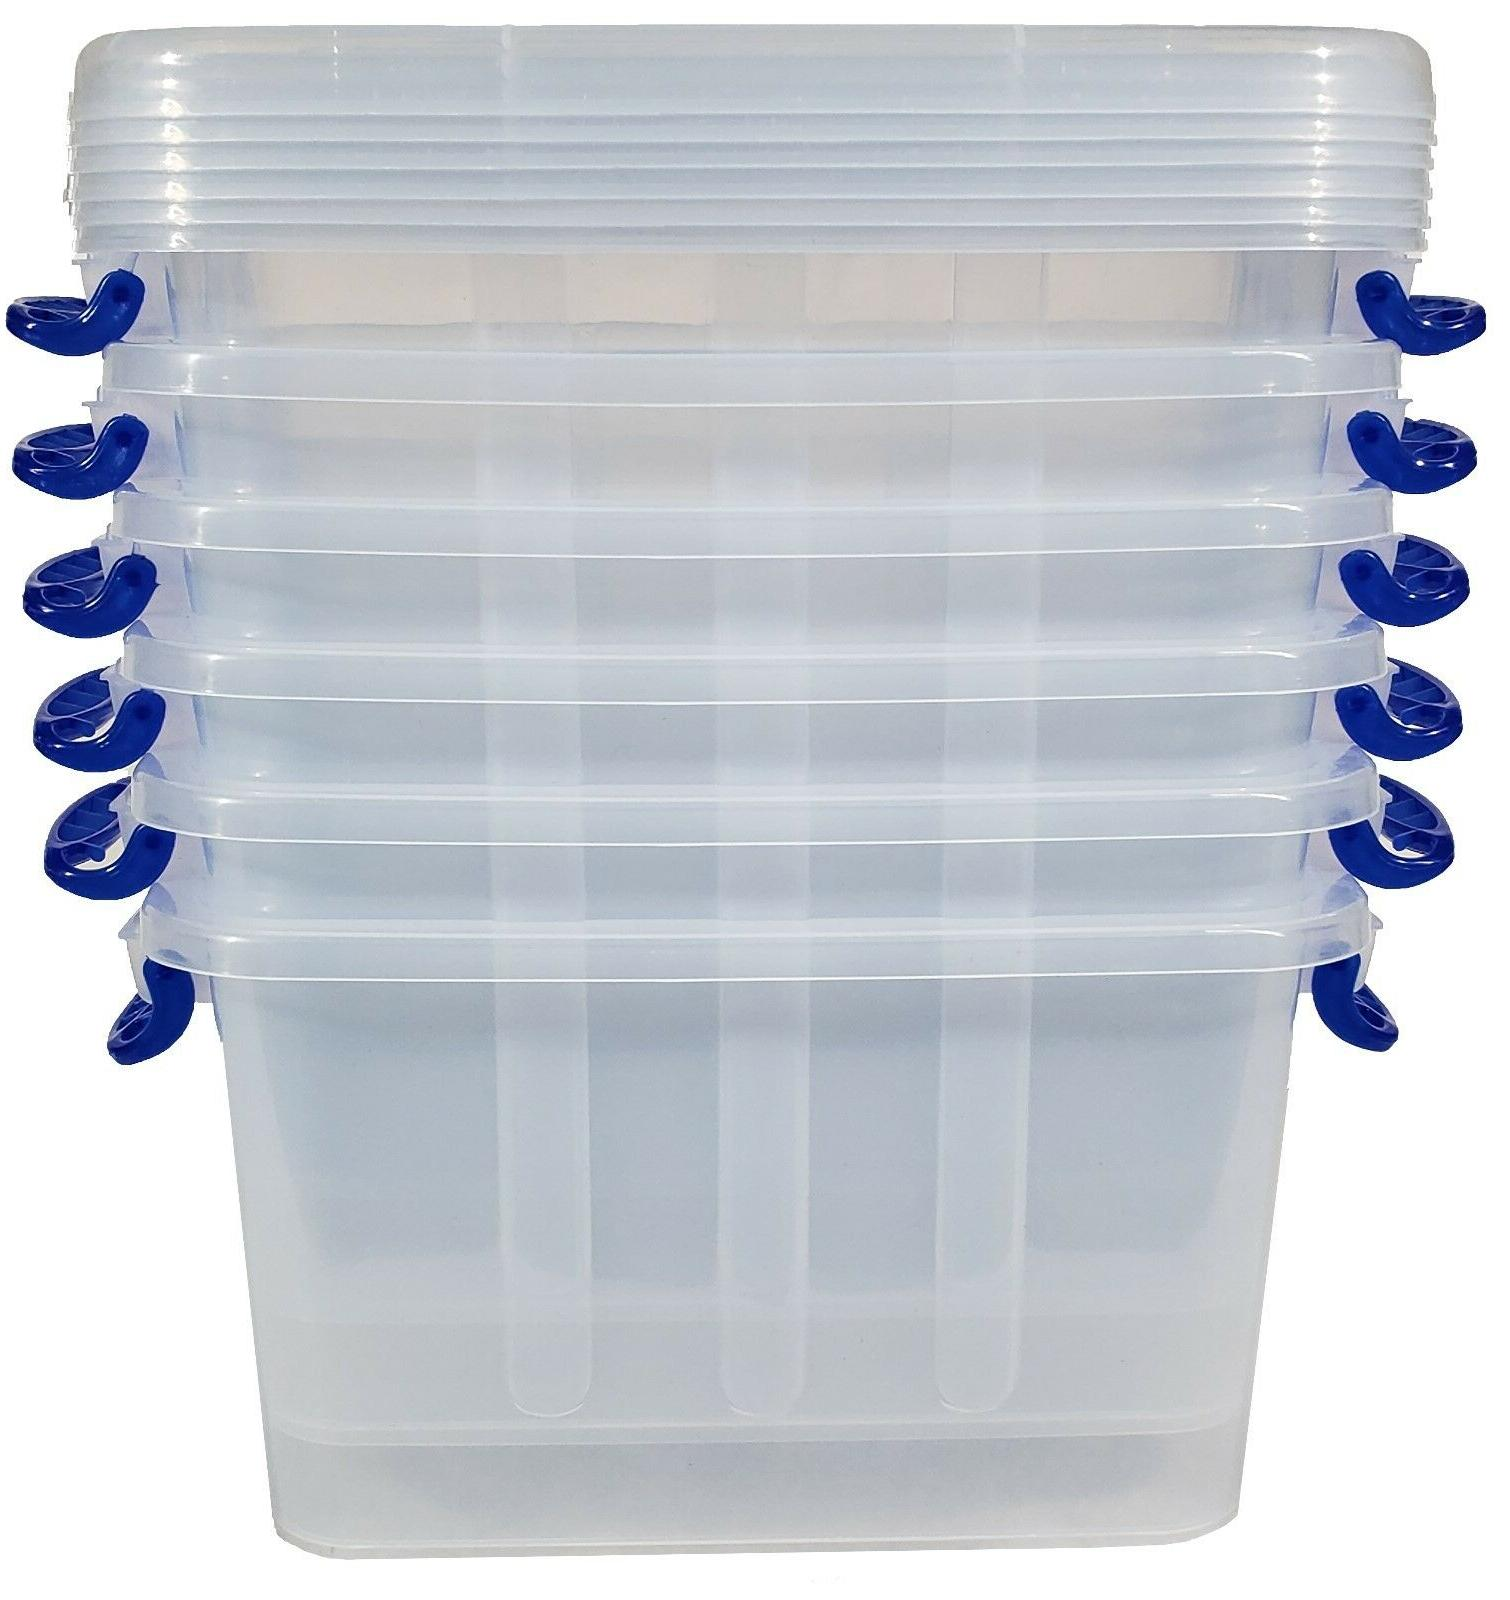 Arteezt Clear Bin - Locking Lid and Storage Box